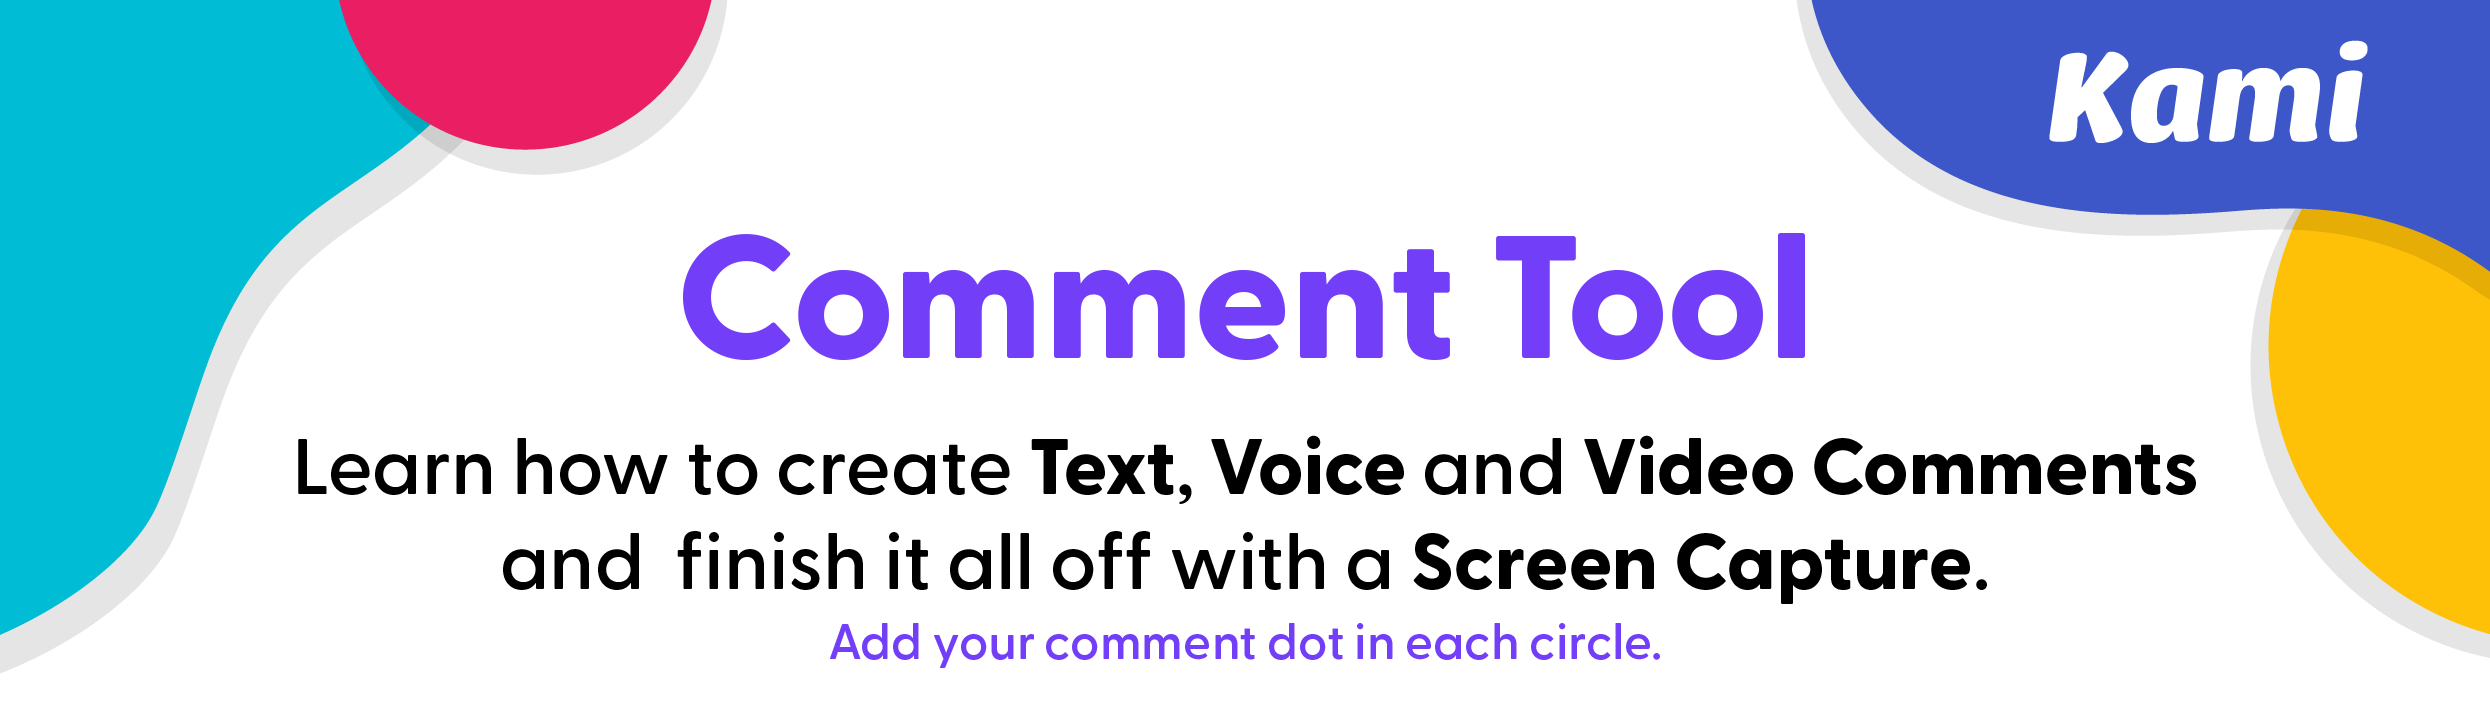 Comment Tool Preview 1